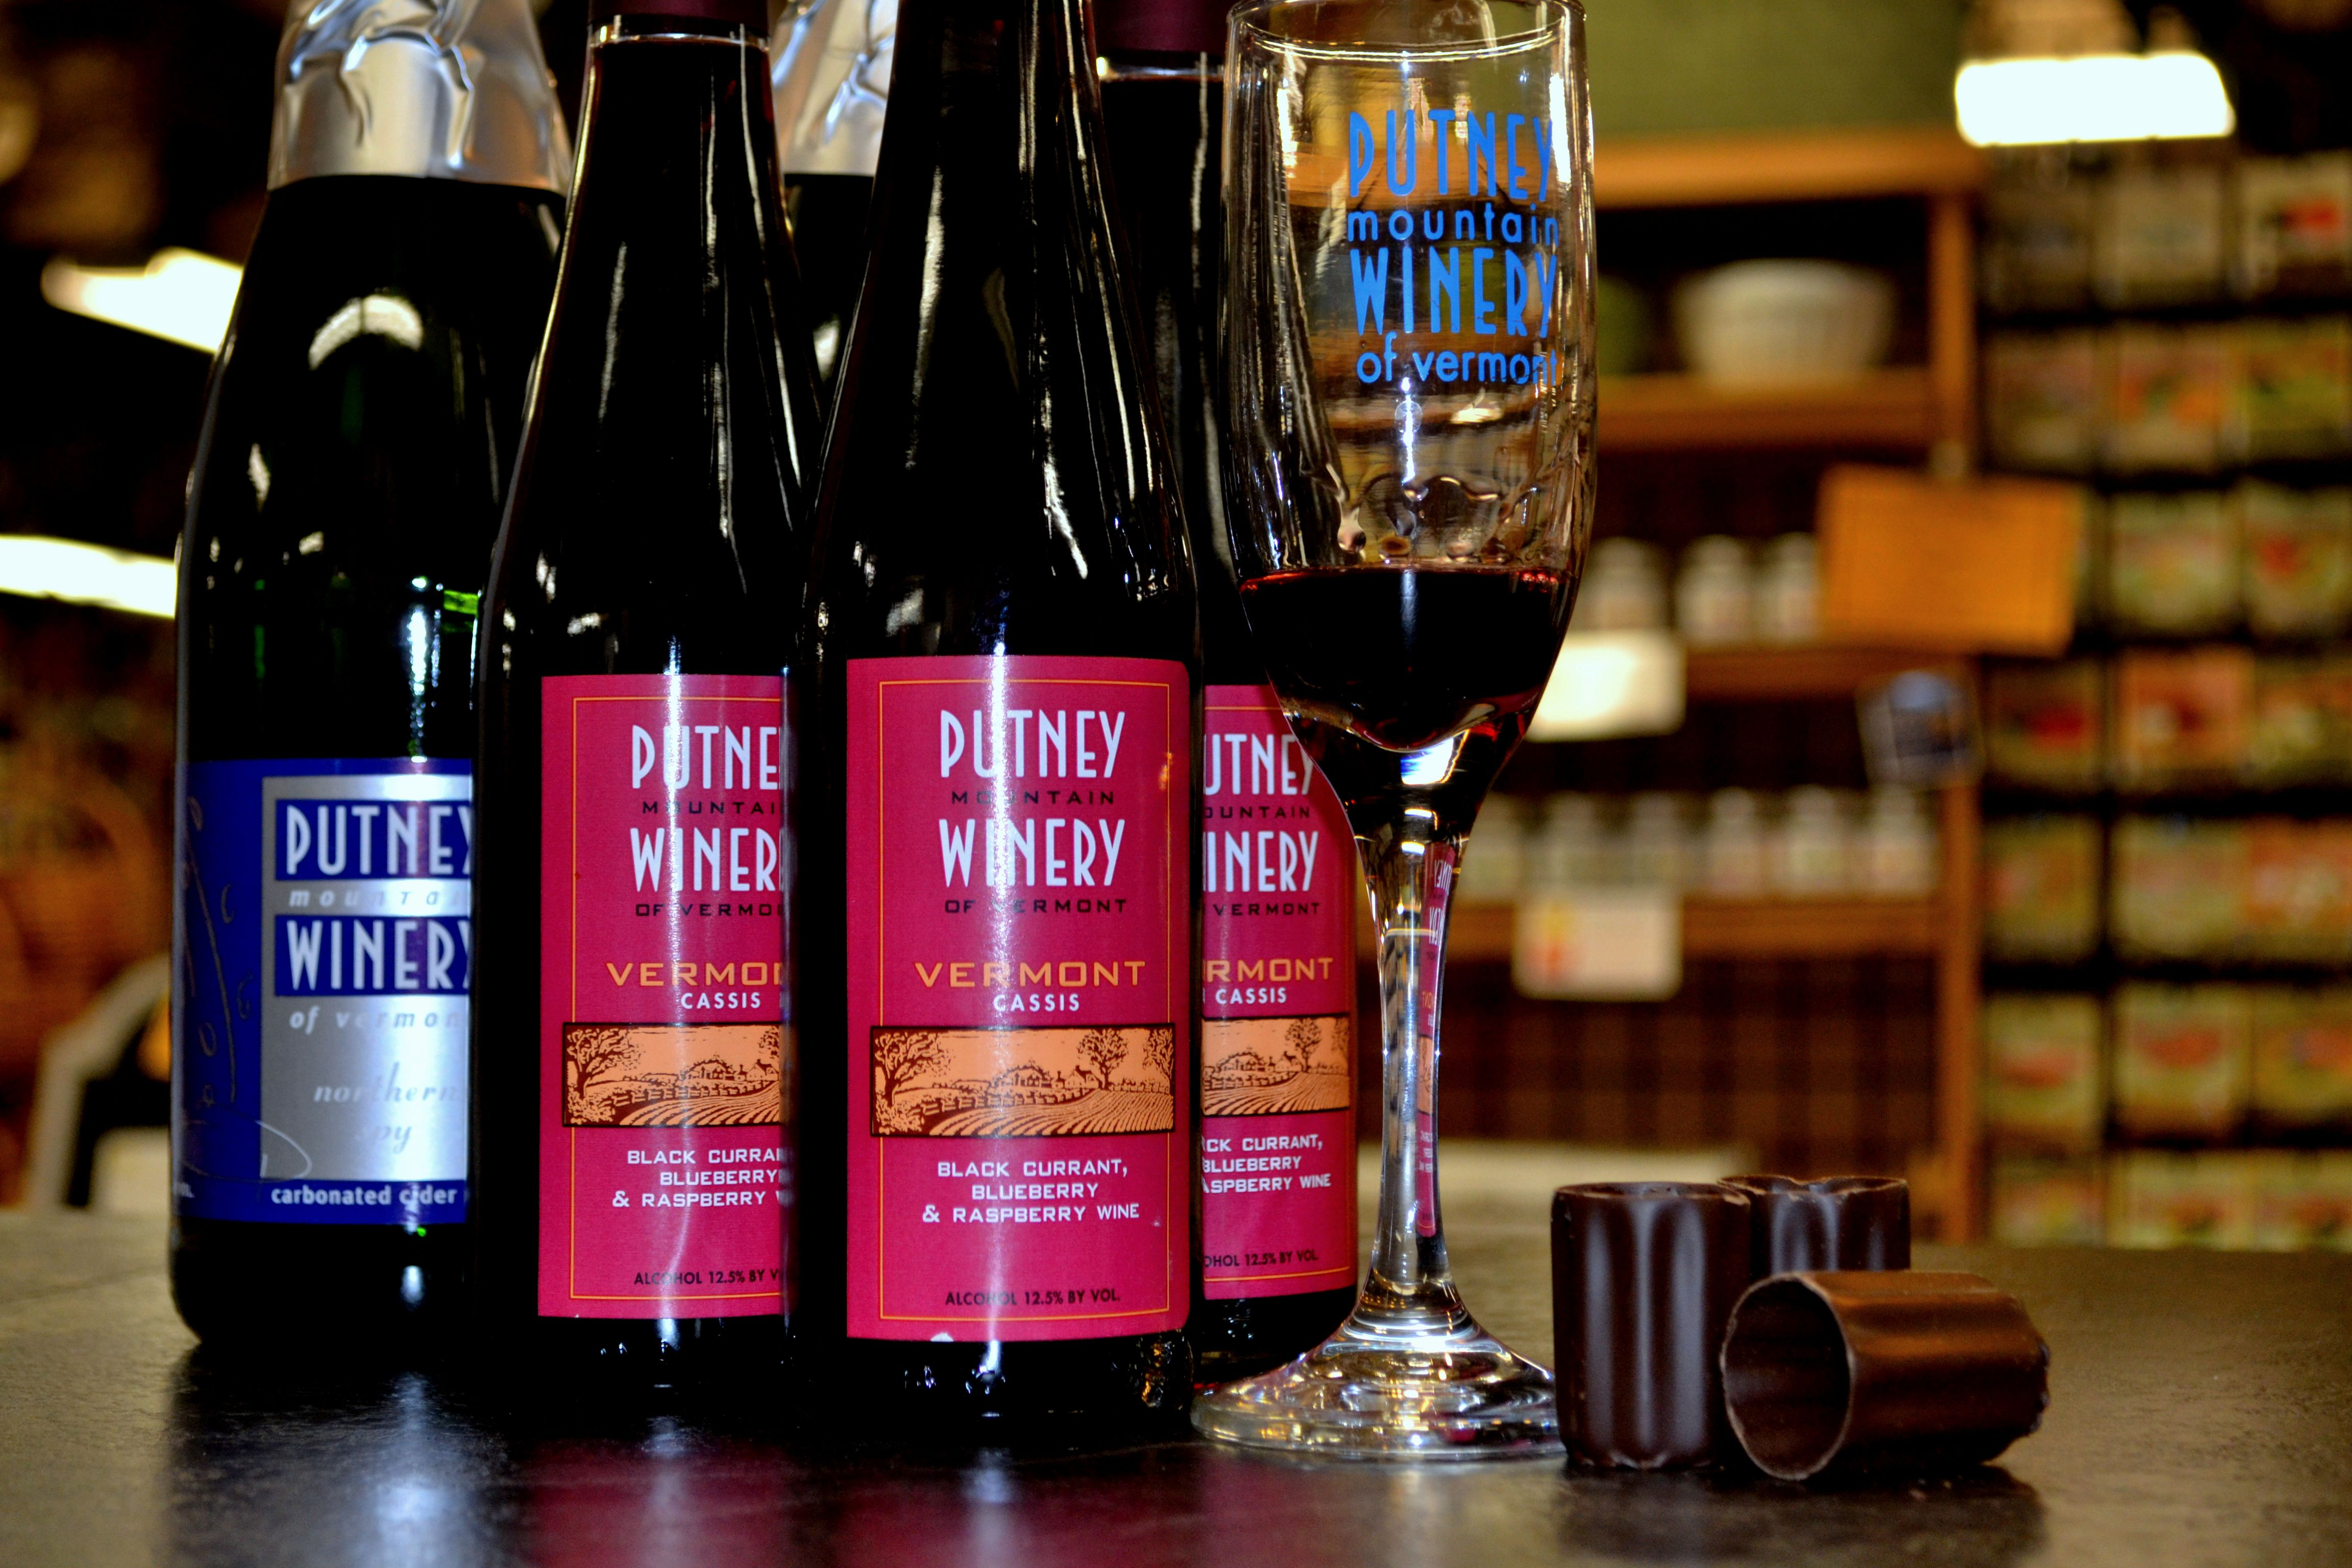 Cassis Kiss Putney Mountain Winery Cassis In Chocolate Shot Glasses Chocolate Shot Glasses Chocolate Shots Wine Recipes